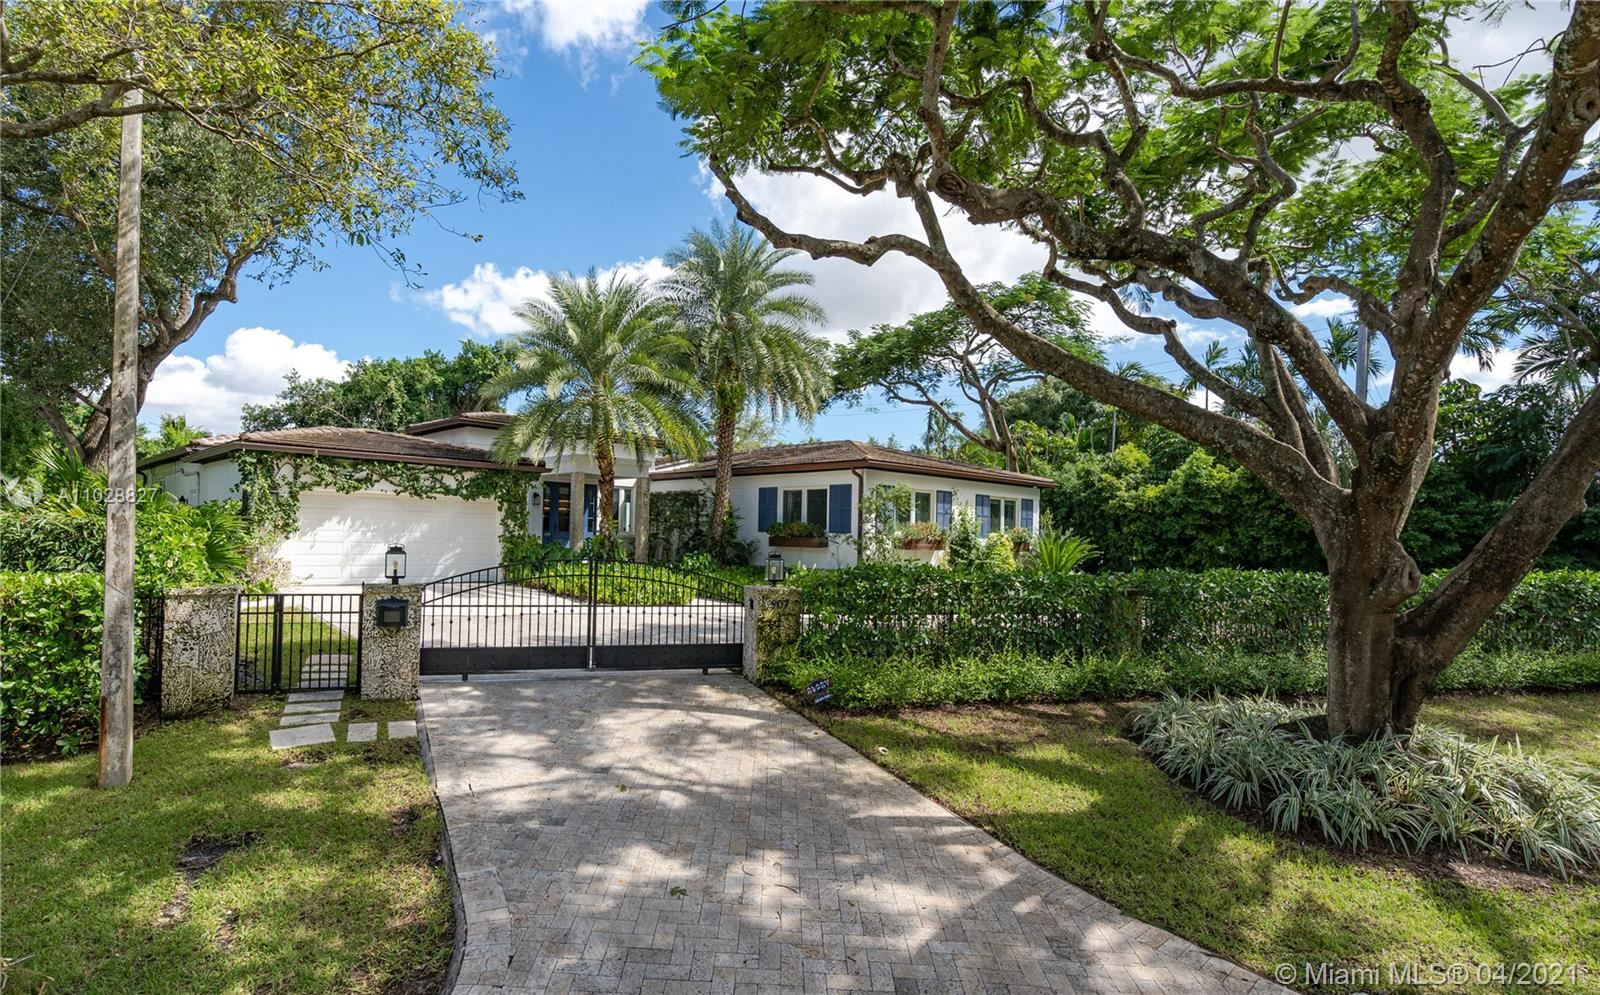 907 Jeronimo Dr, Coral Gables, FL 33146 - #: A11028827